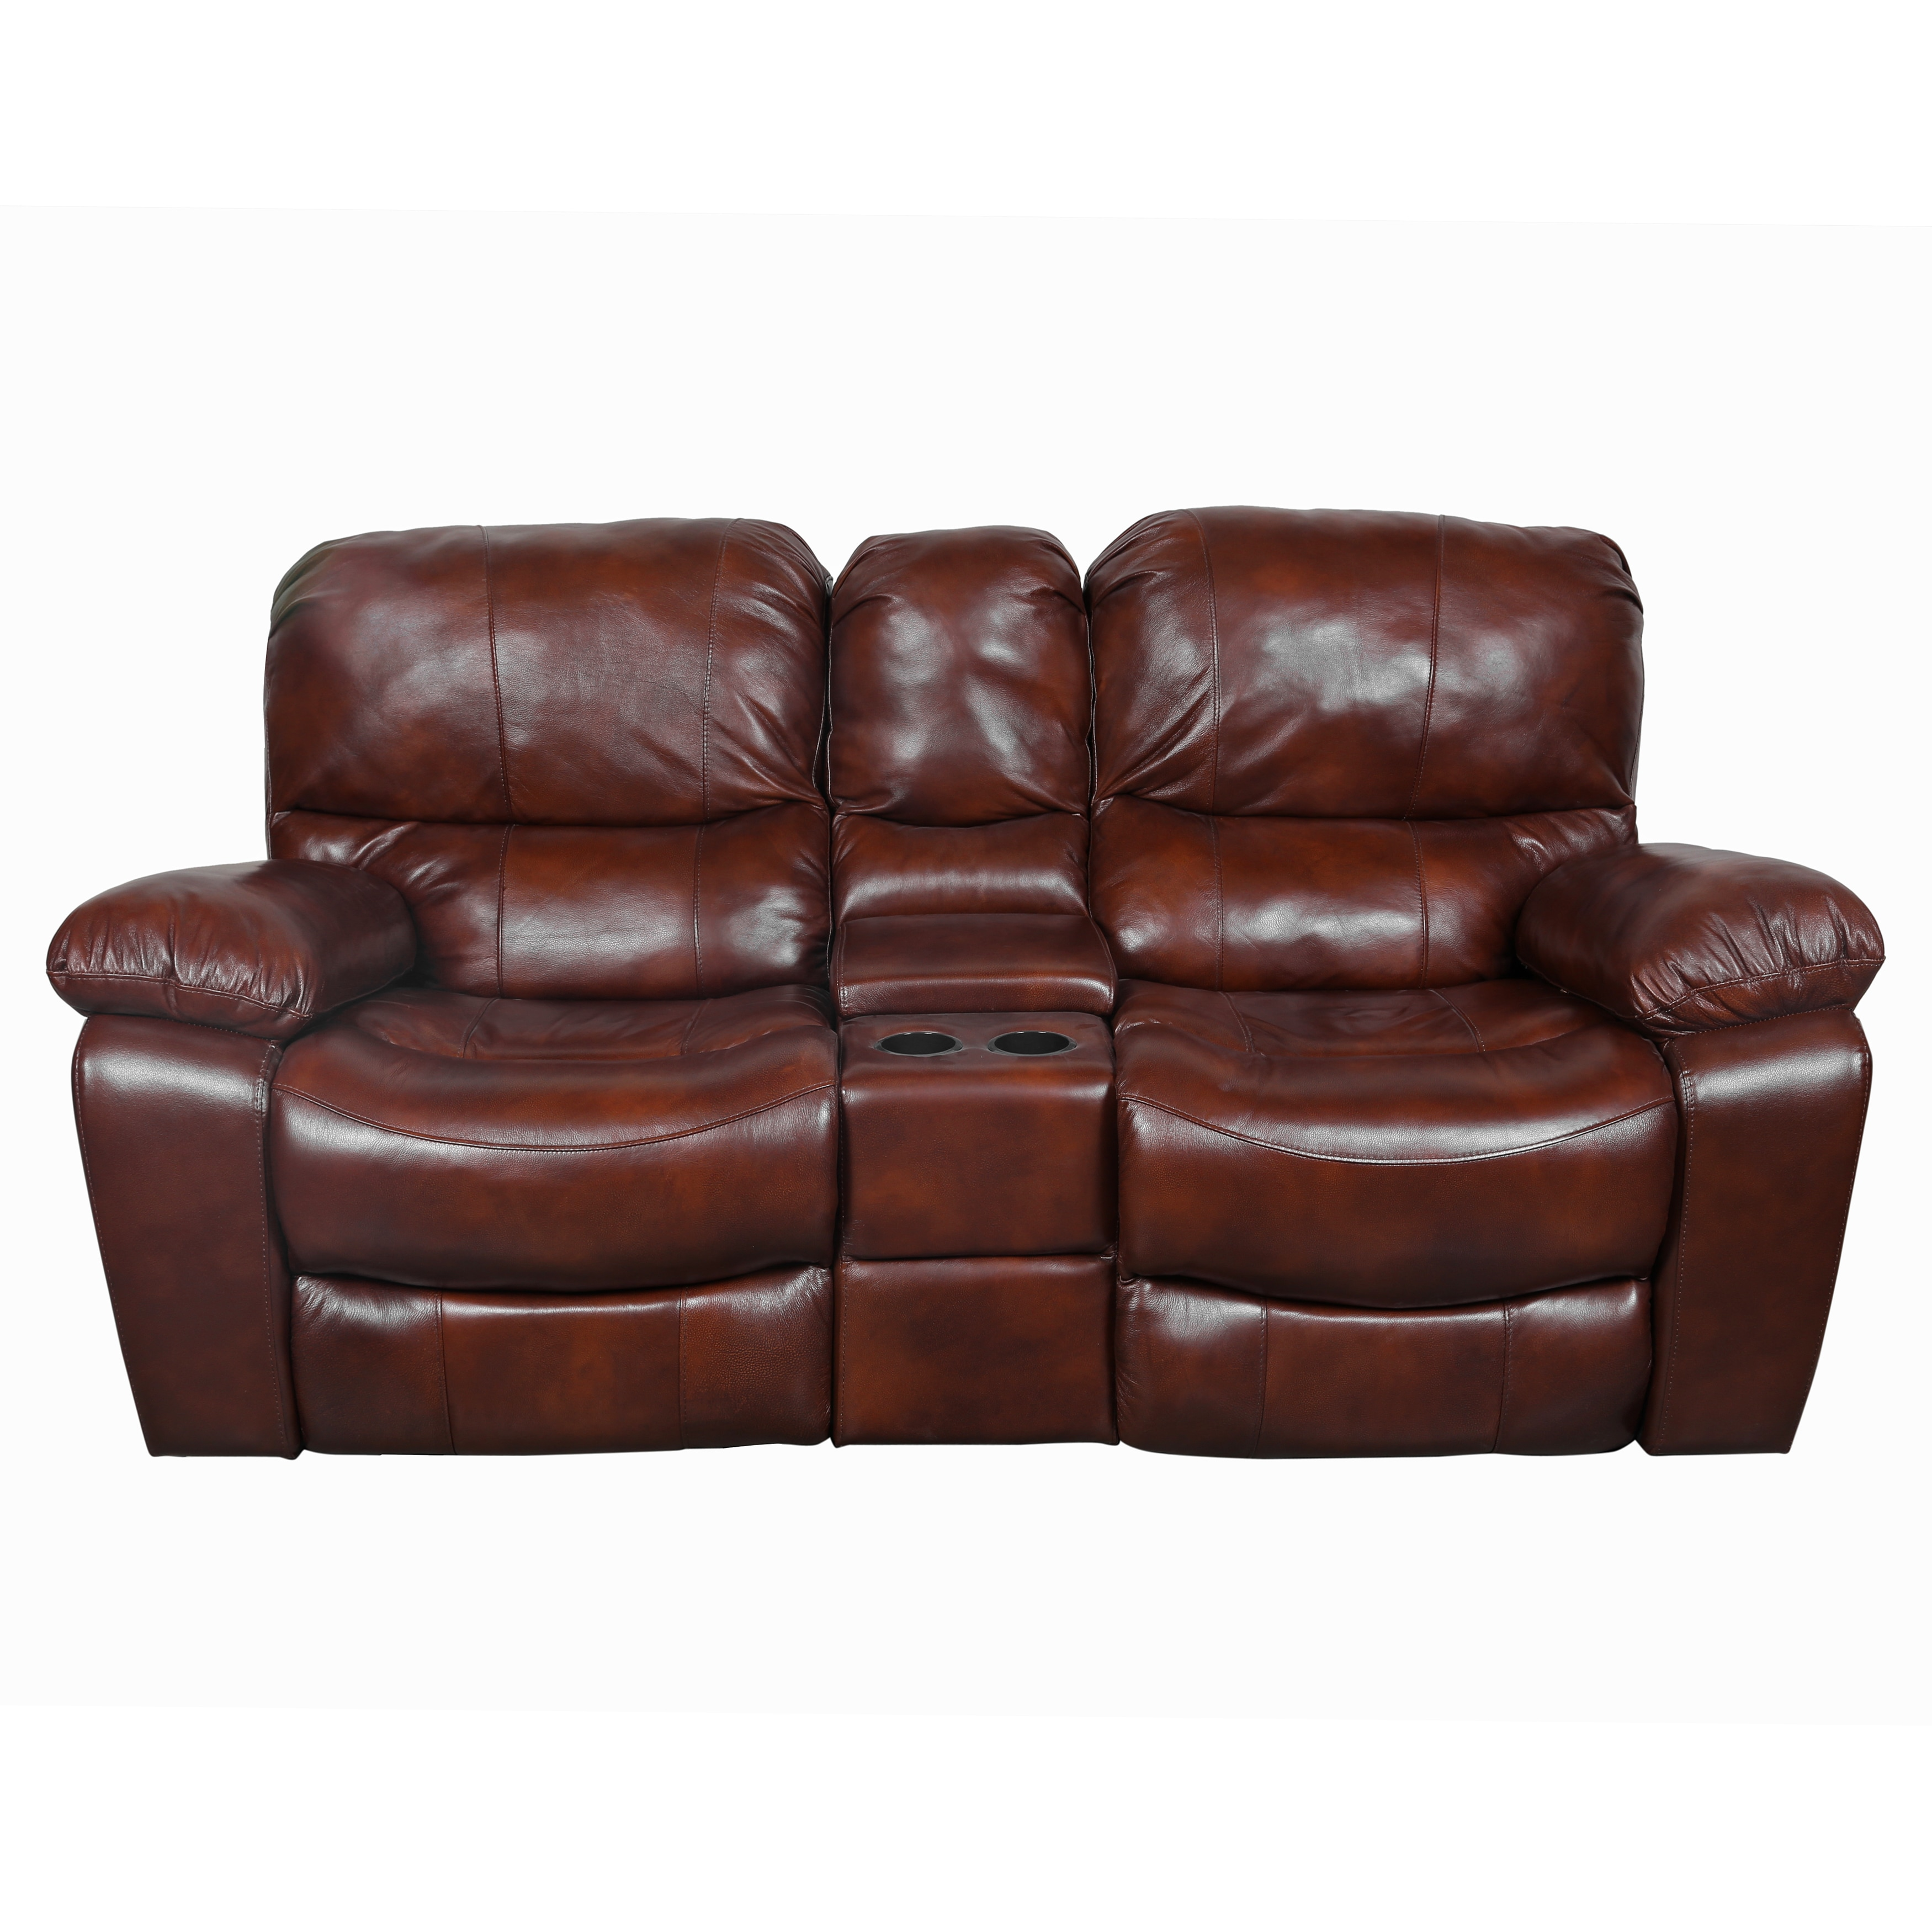 Porter Ramsey Top Grain Leather Gliding Recliner Loveseat...